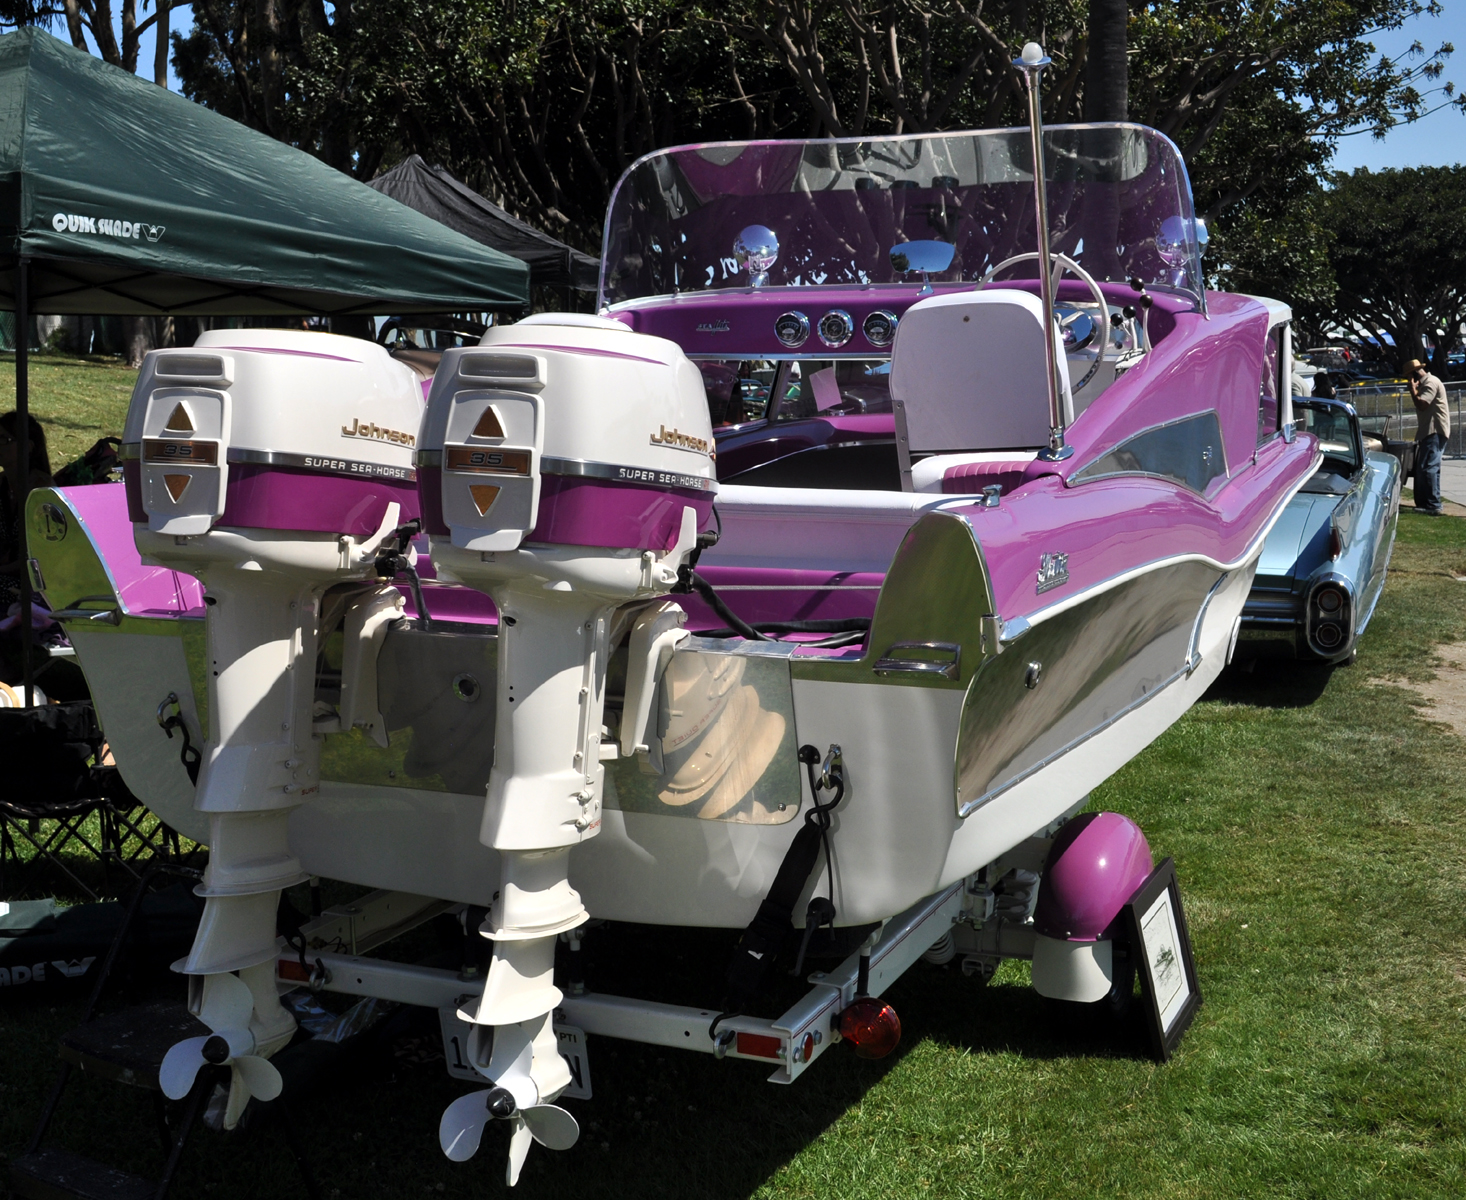 Justa A Car Guy: Cool boat and RV found at the Motorama on